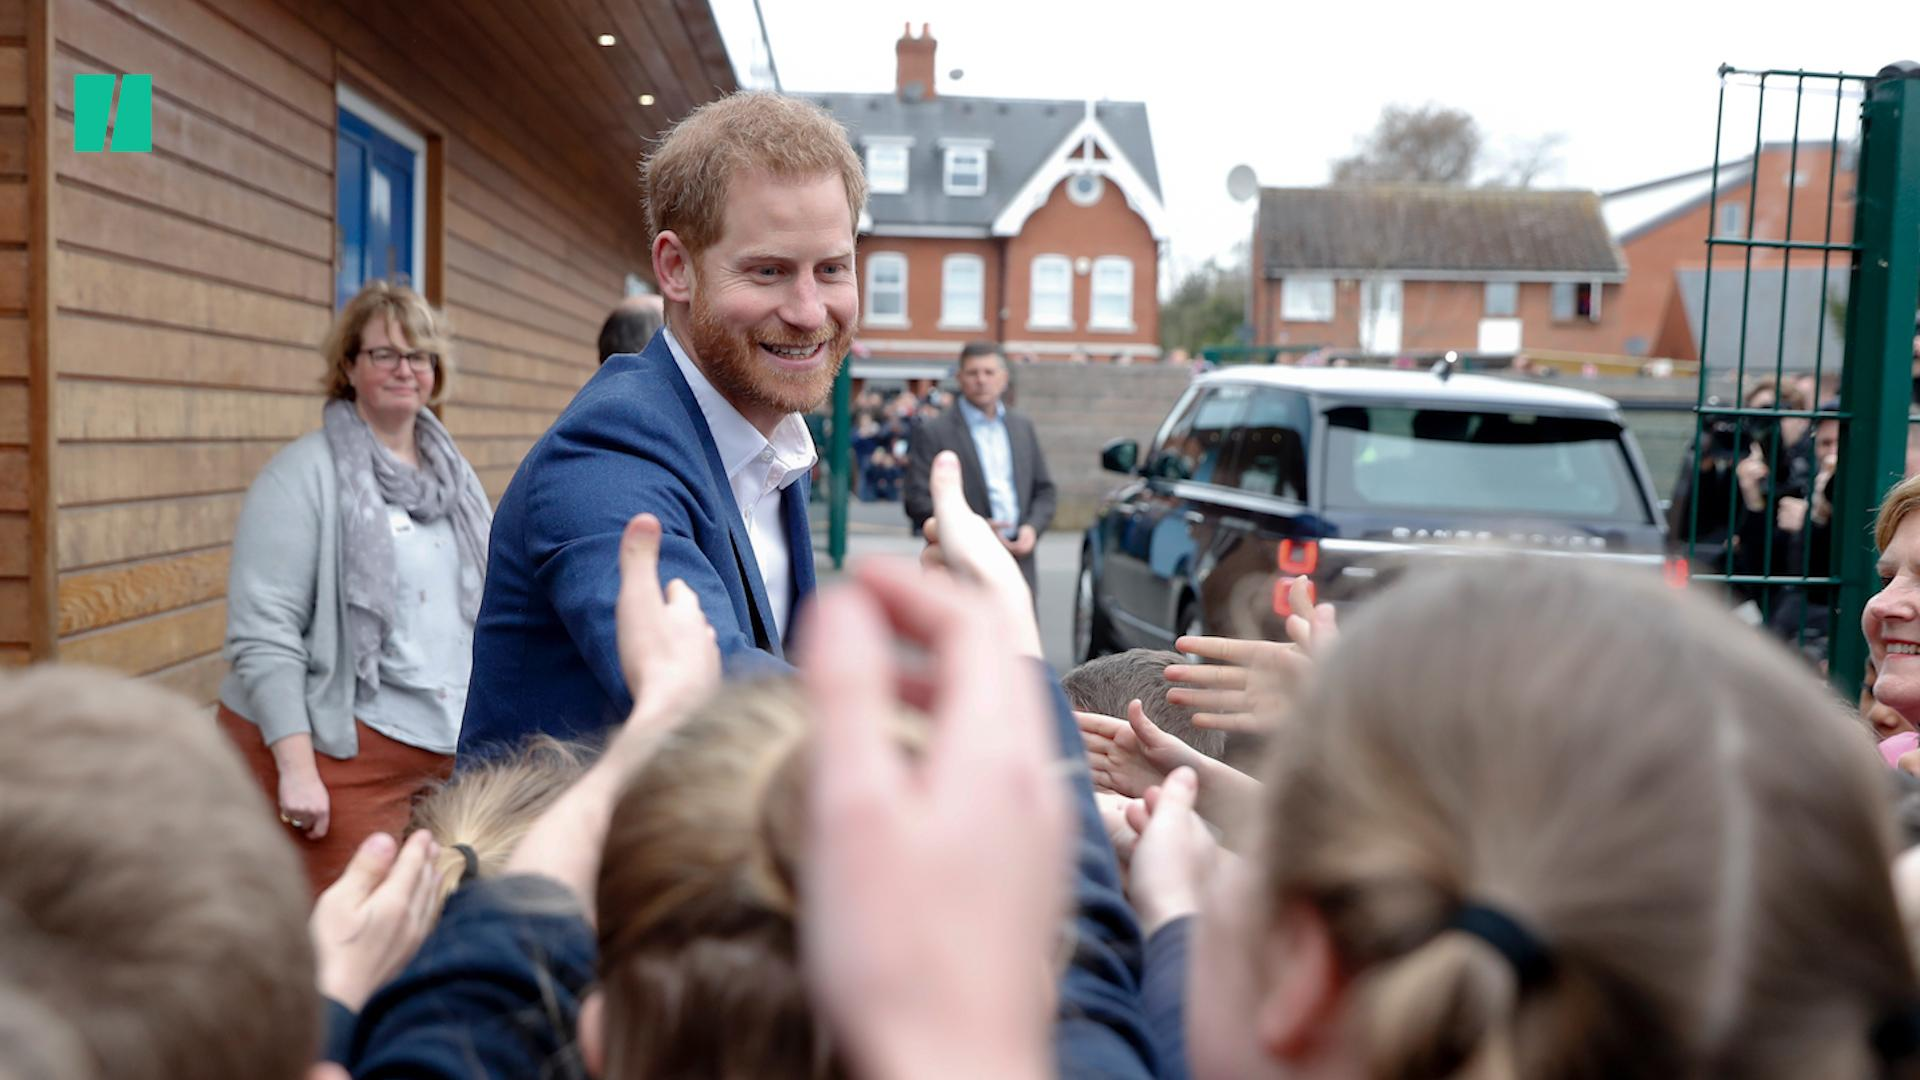 Prince Harry Plants Tree With Children At West London School